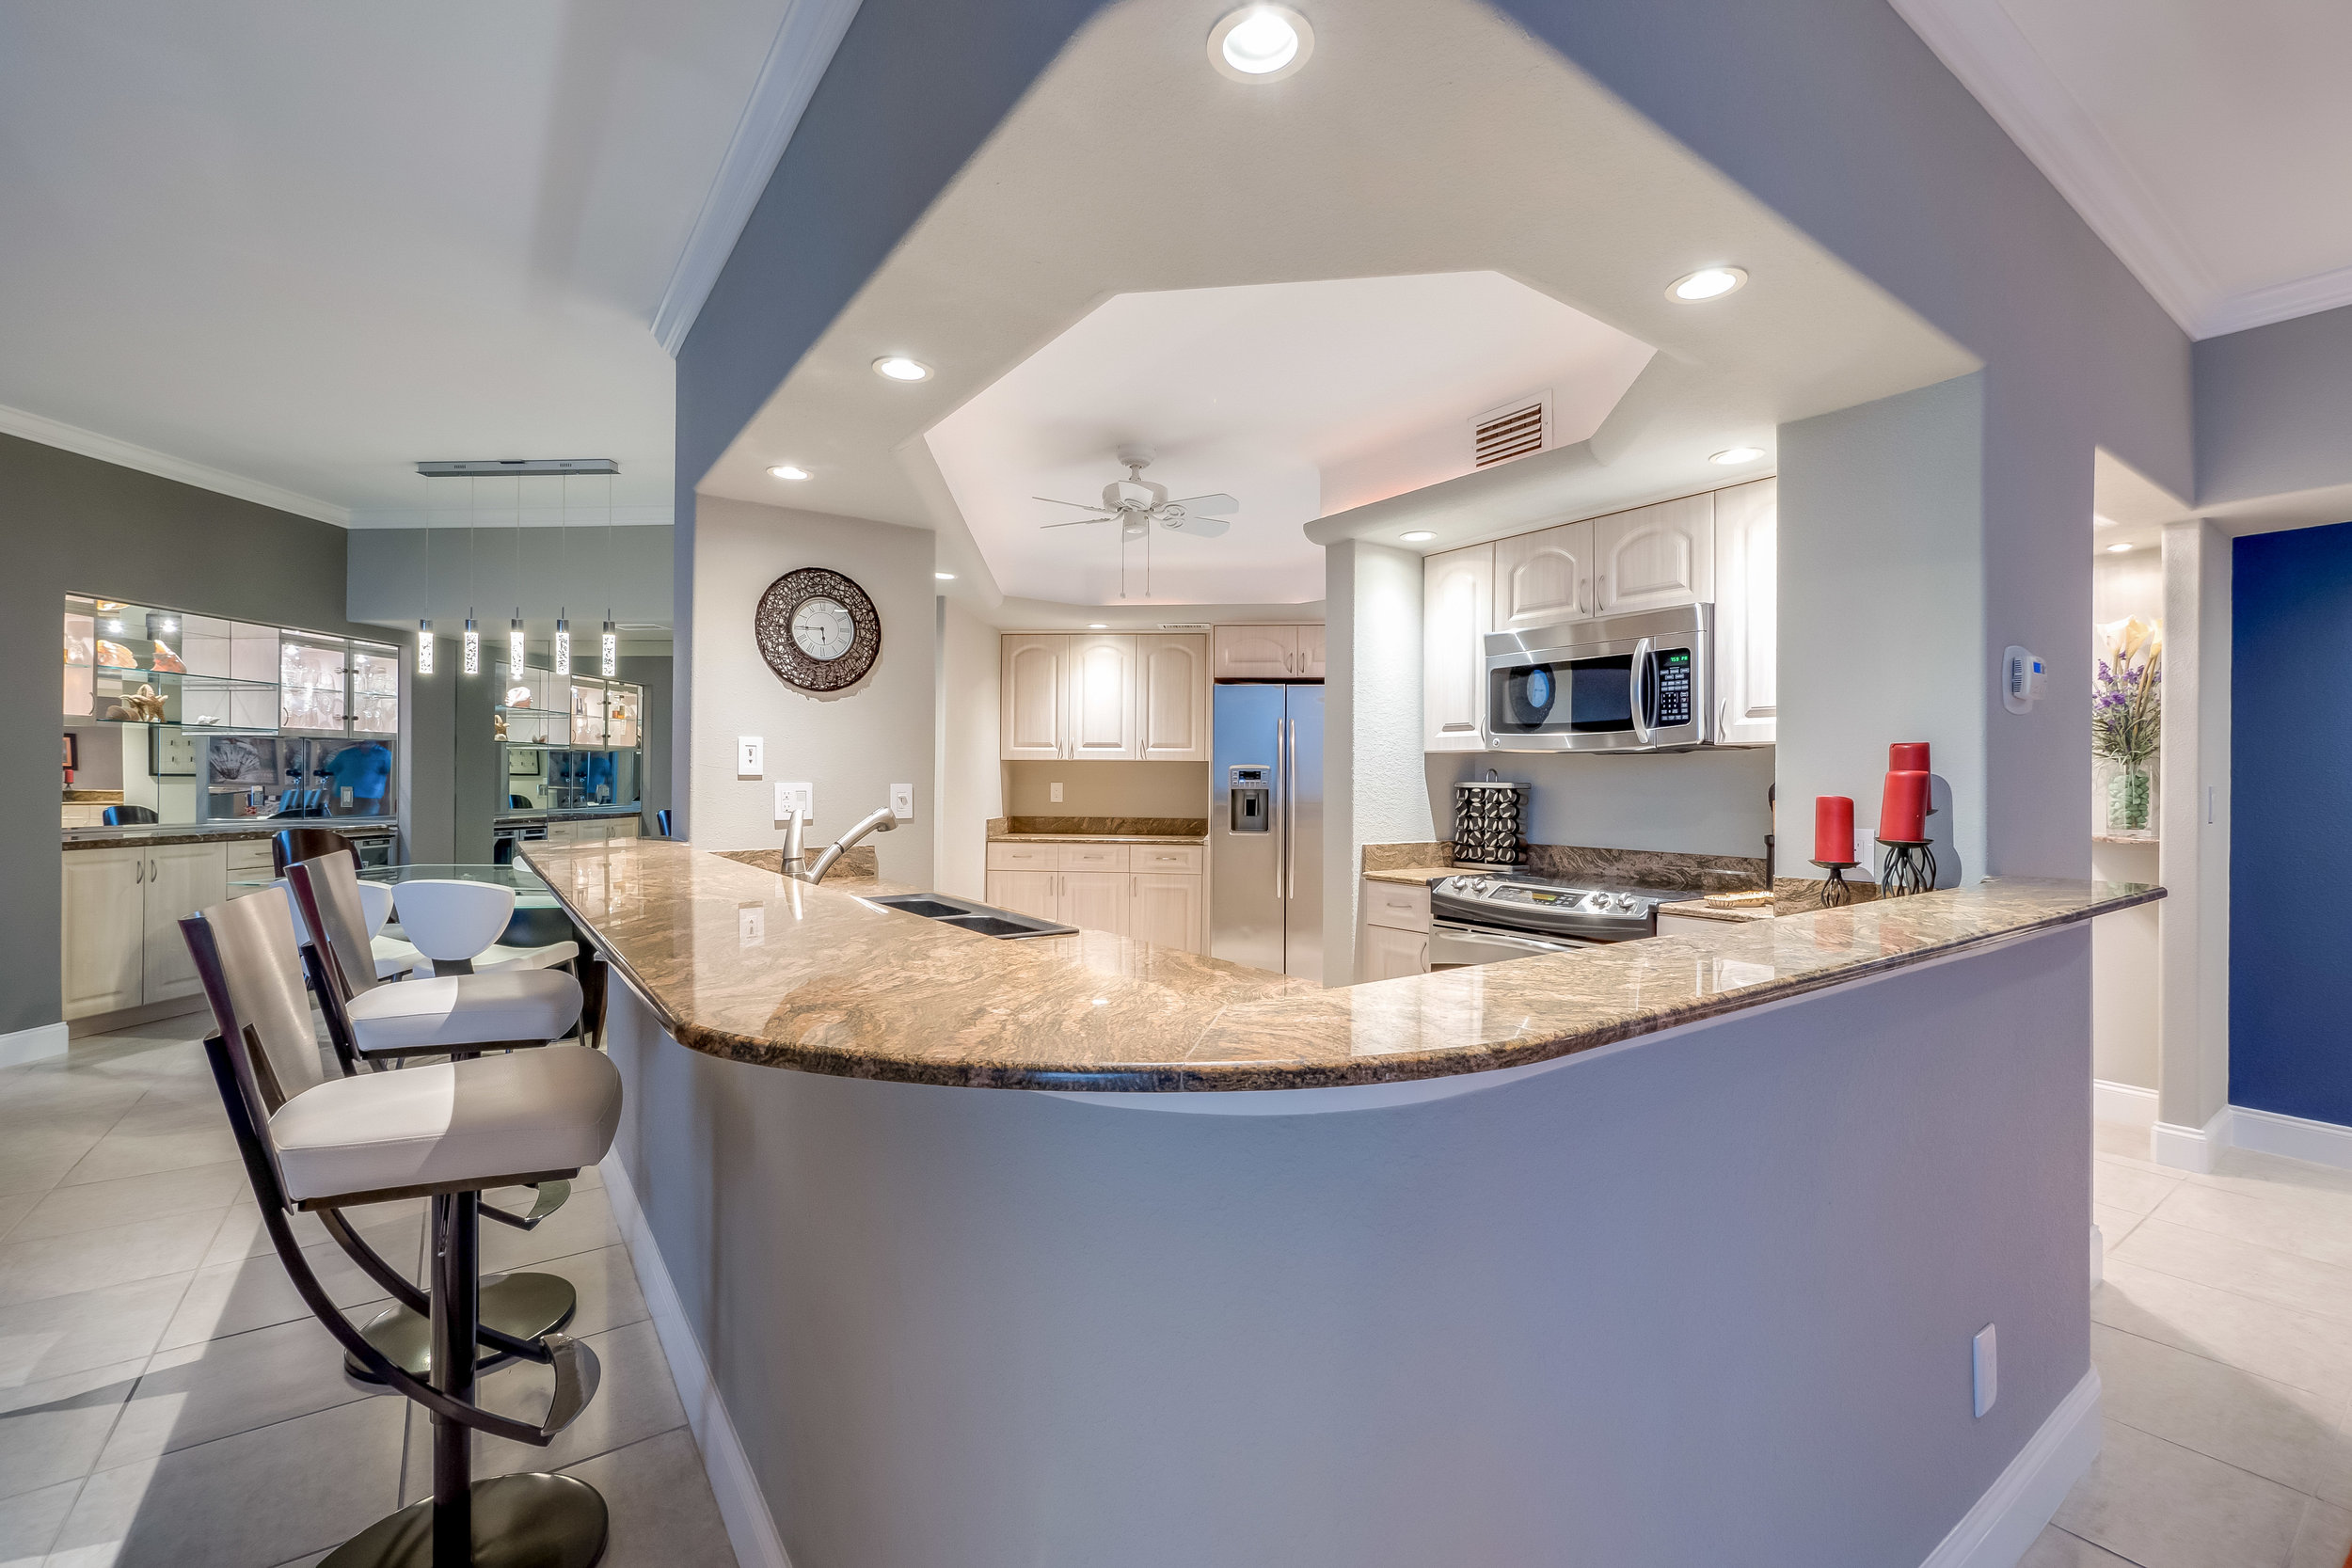 Gorgeous granite, stainless steel appliances, and bar are features of the beautiful kitchen.